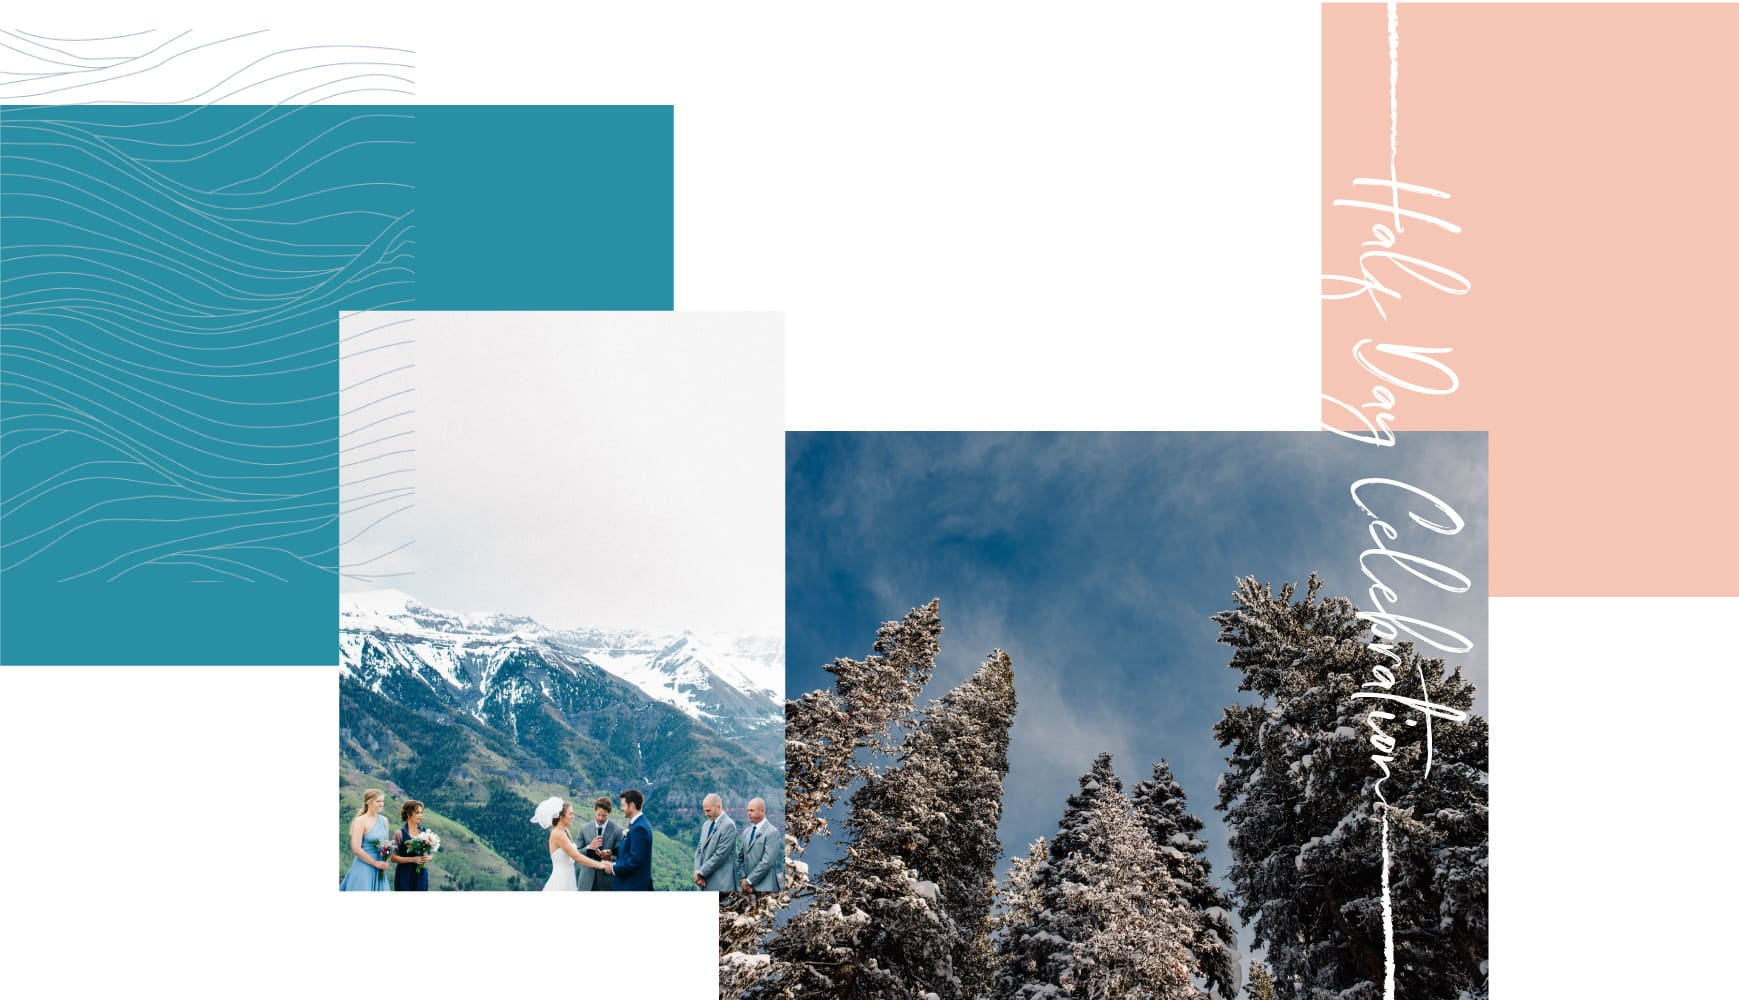 couple getting married on top of mountain, view of snow covered trees text: half day celebration